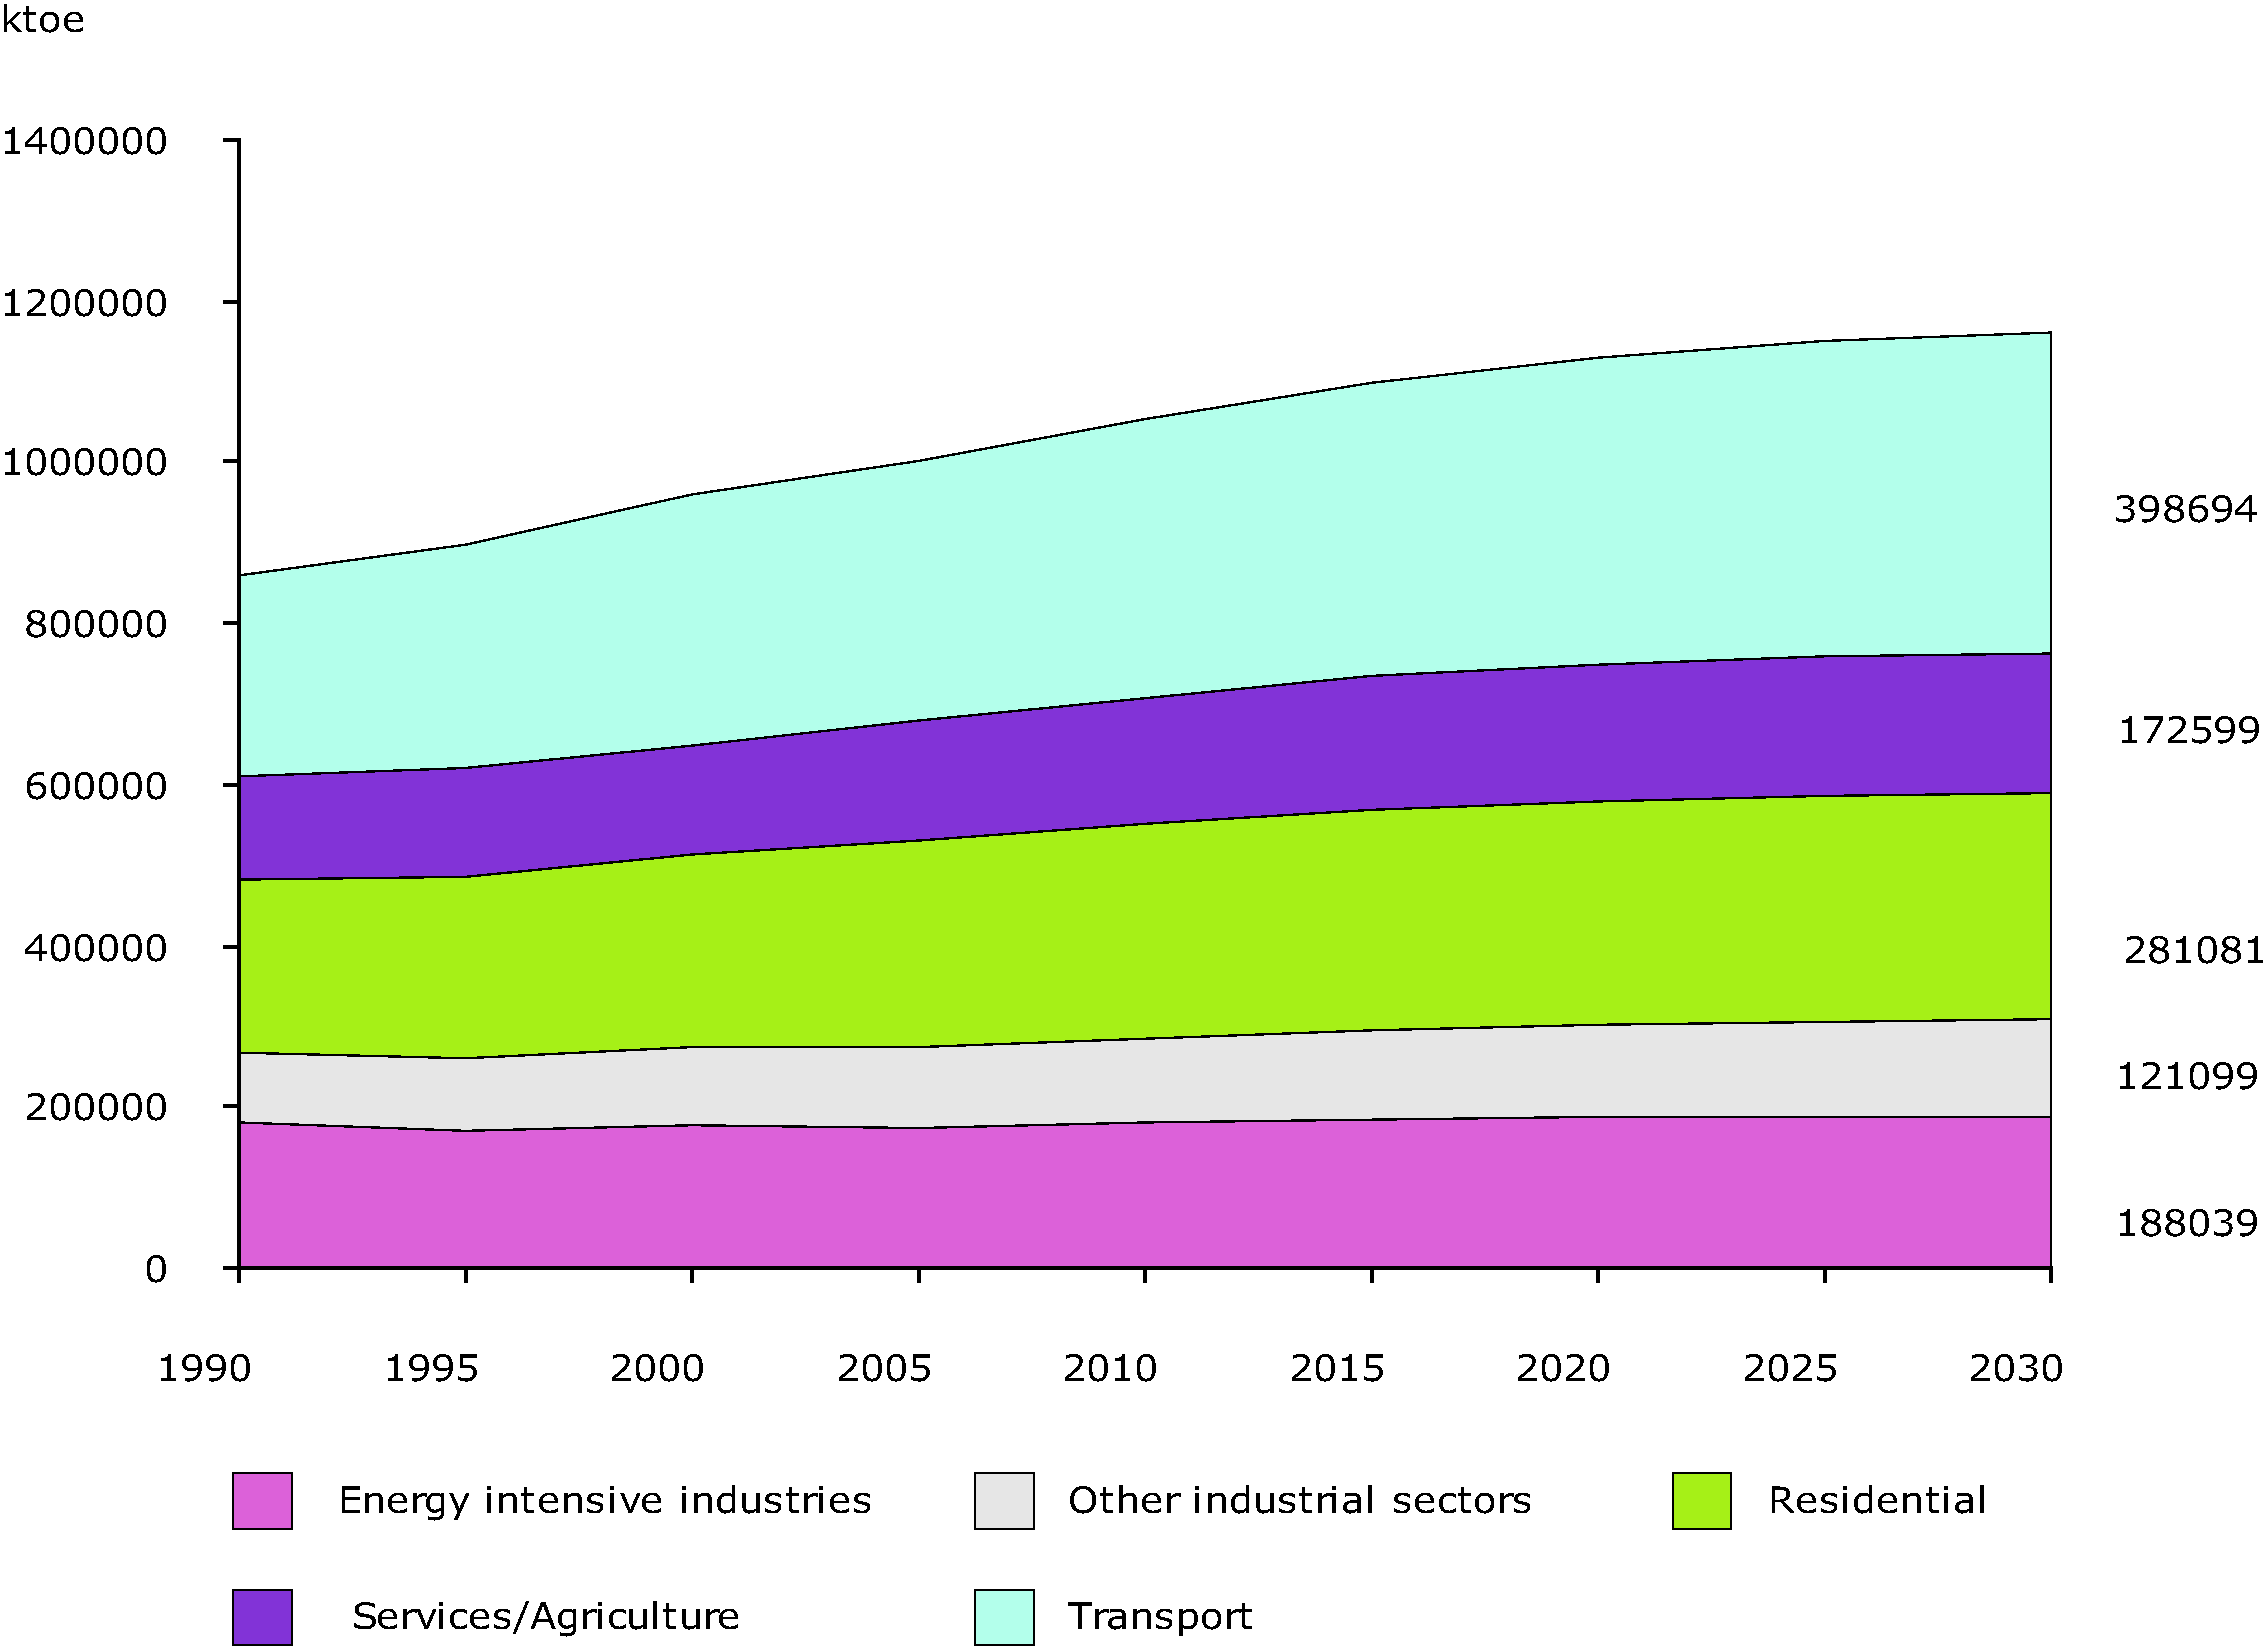 Final Energy demand by sector - EU15 (Baseline Scenario)